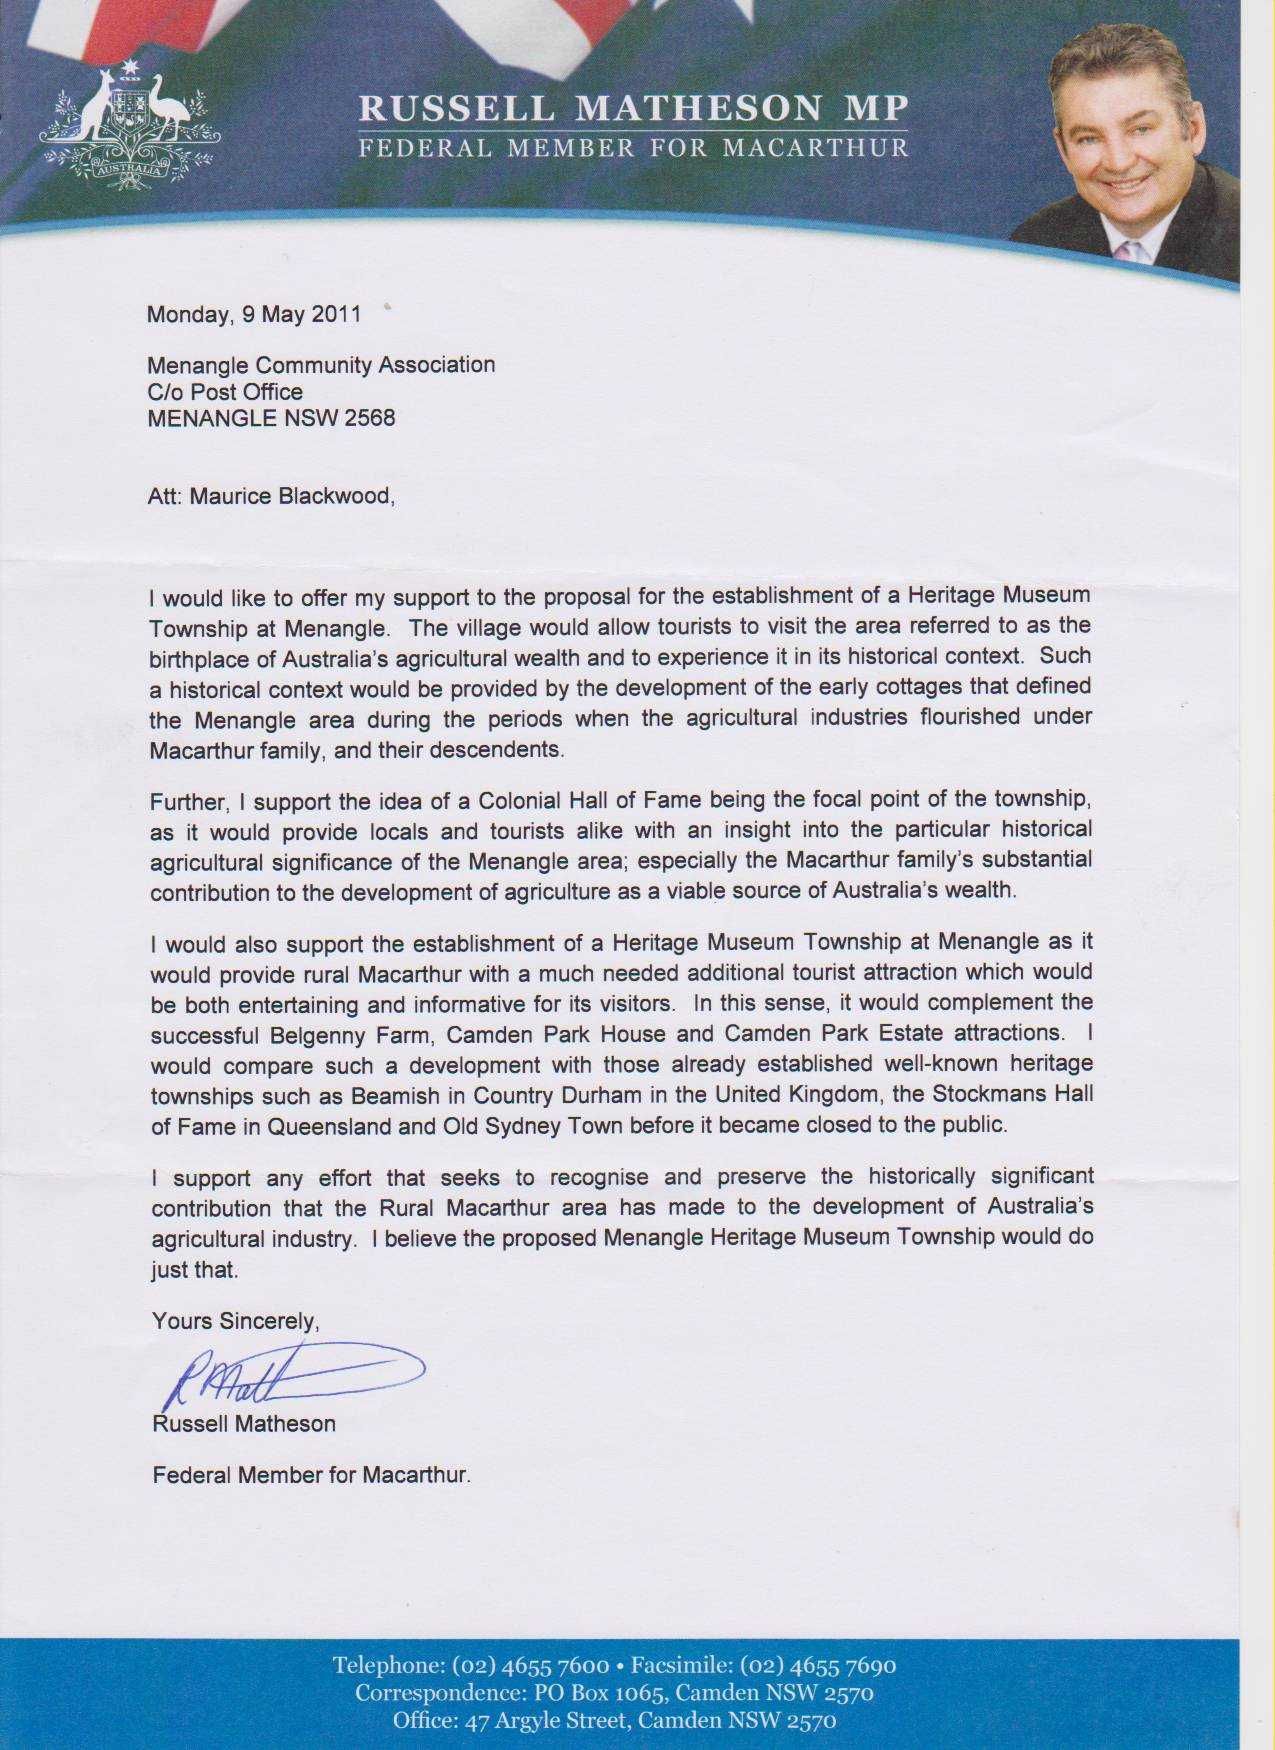 letter of support  Russell Matheson  Menangle  the